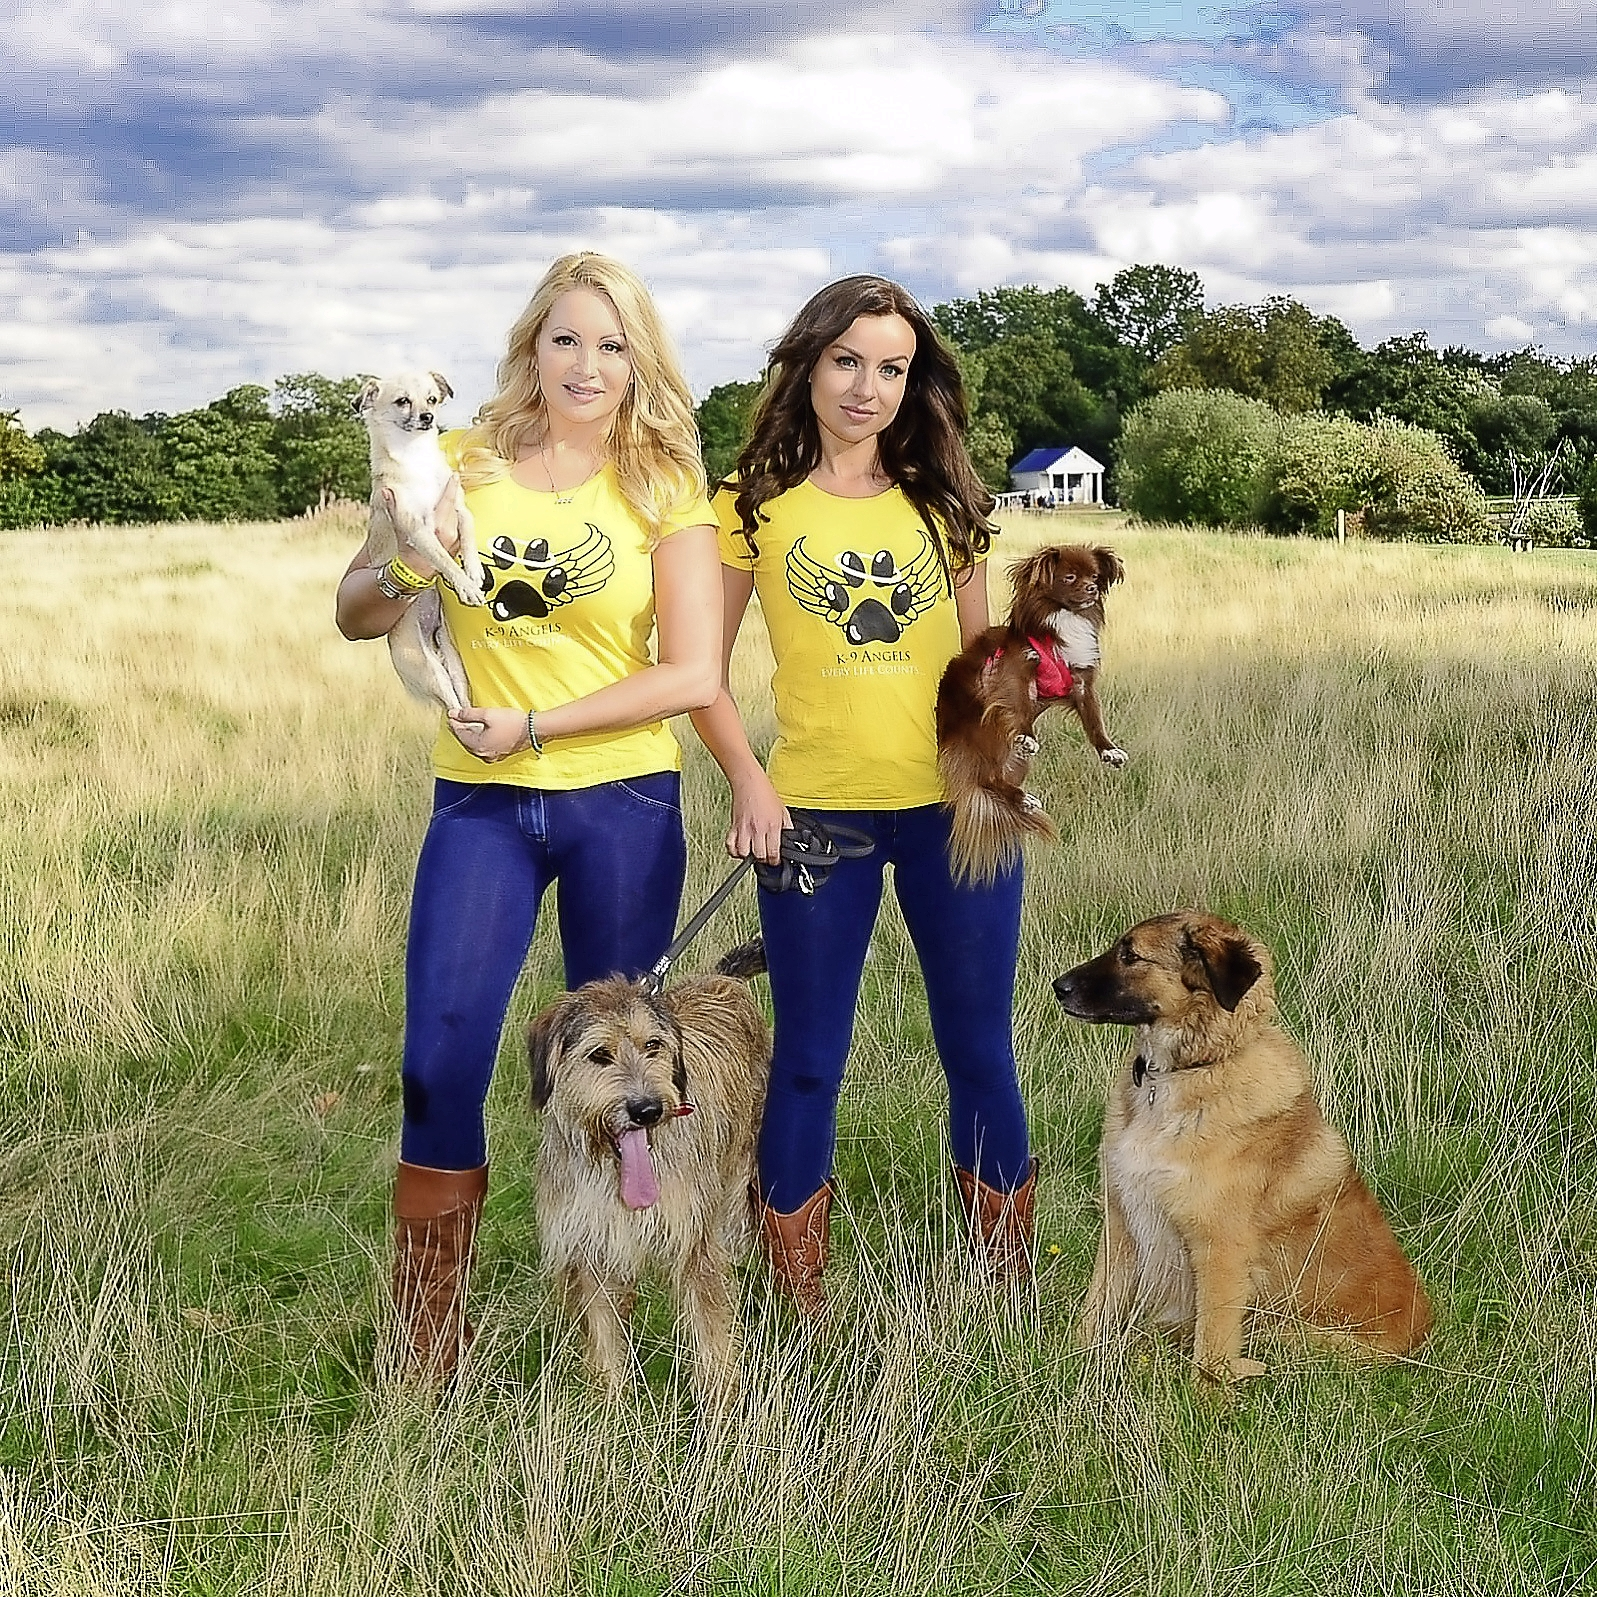 The amazing K-9 Angels in action